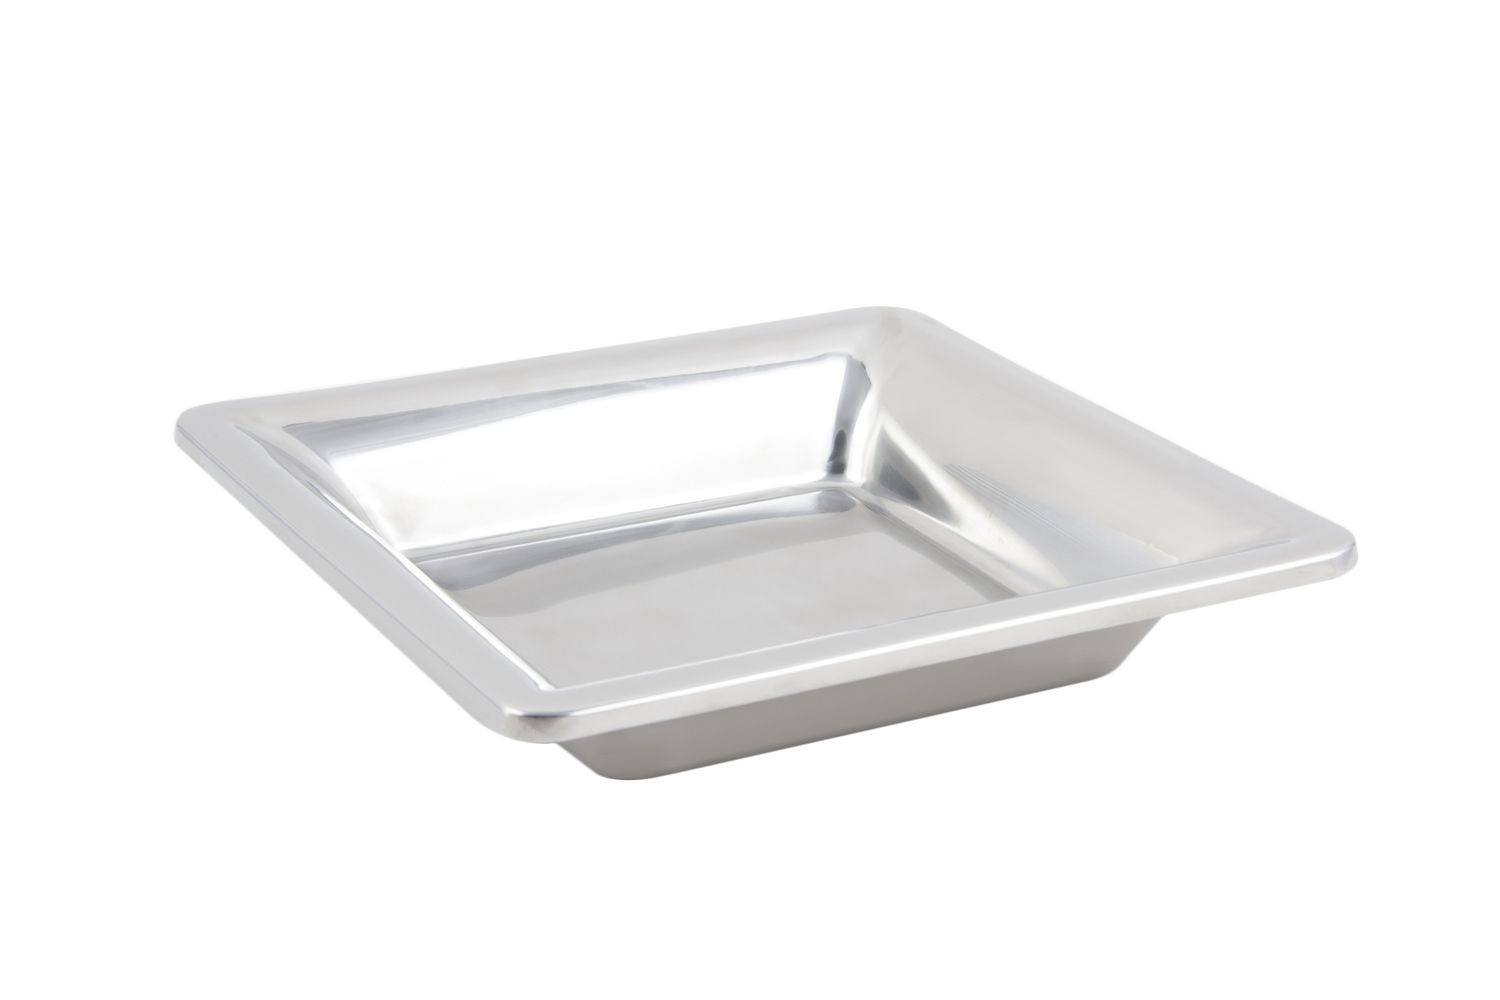 "Bon Chef 9322 Cold Wave Square Platter with Satin Finish, 11 7/8"" x 11 7/8"" x 2 1/4"", Set of 6"